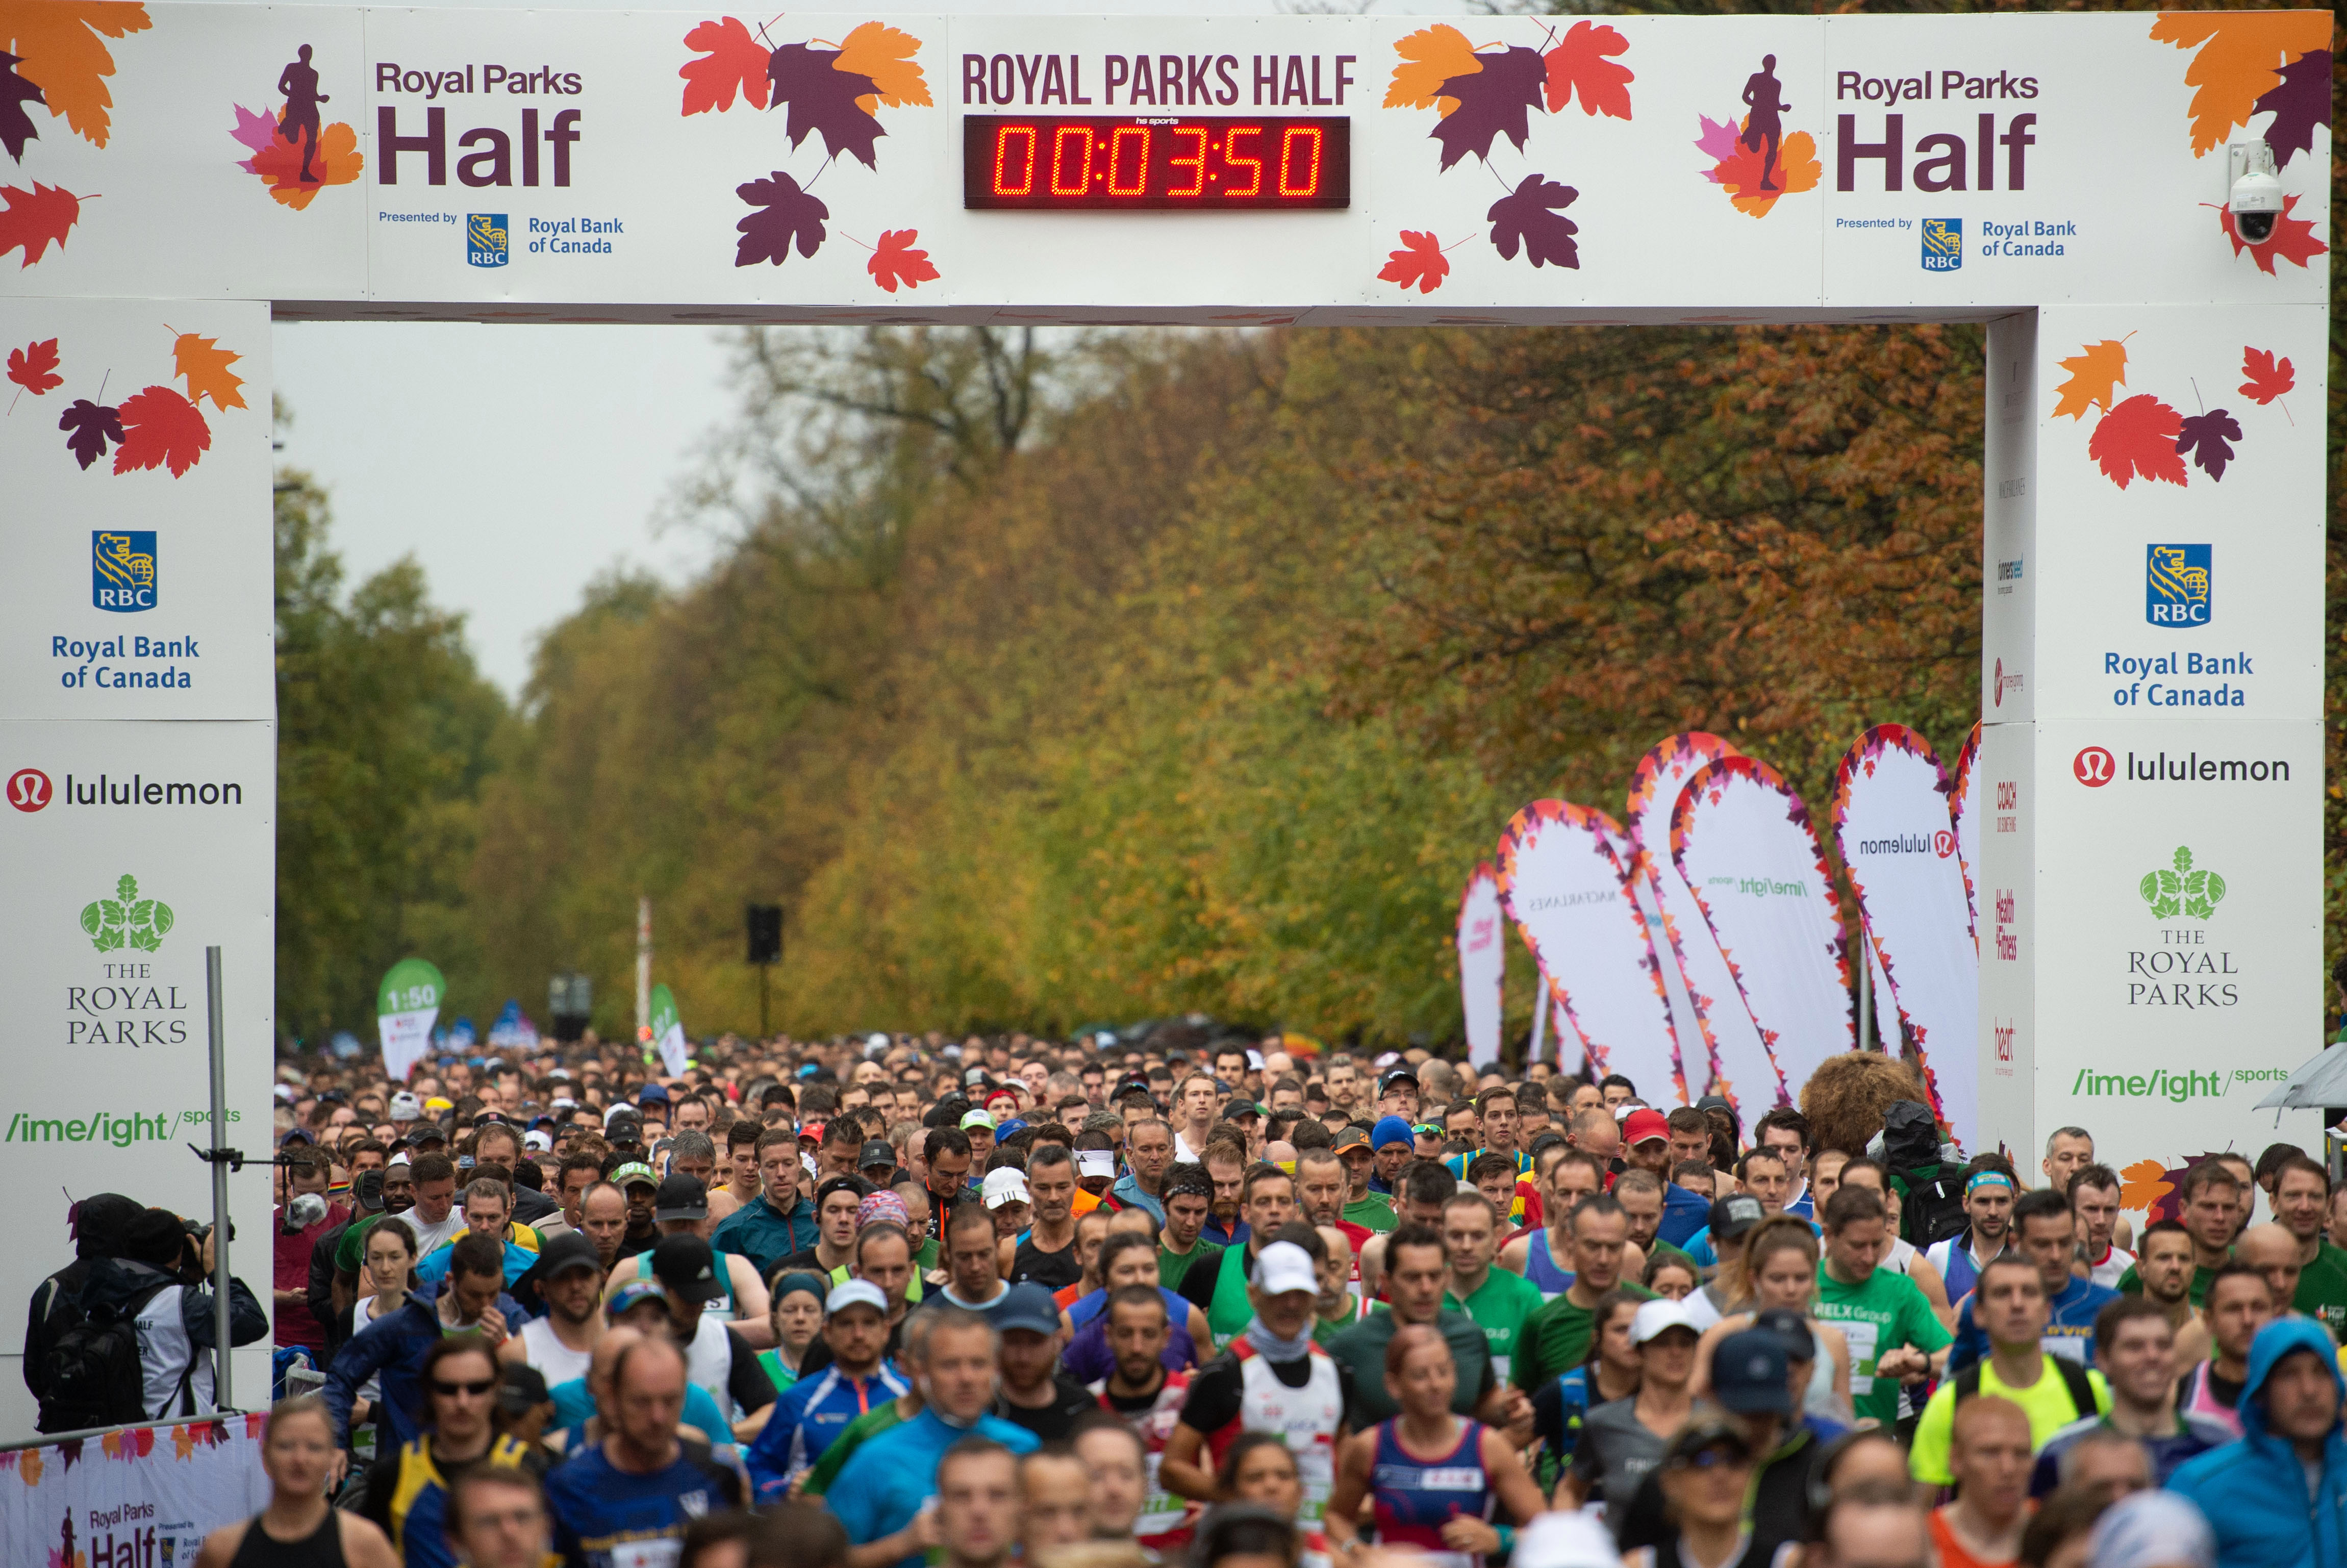 Rory recommends signing up for a challenge like the Royal Parks Half Marathon (pictured)